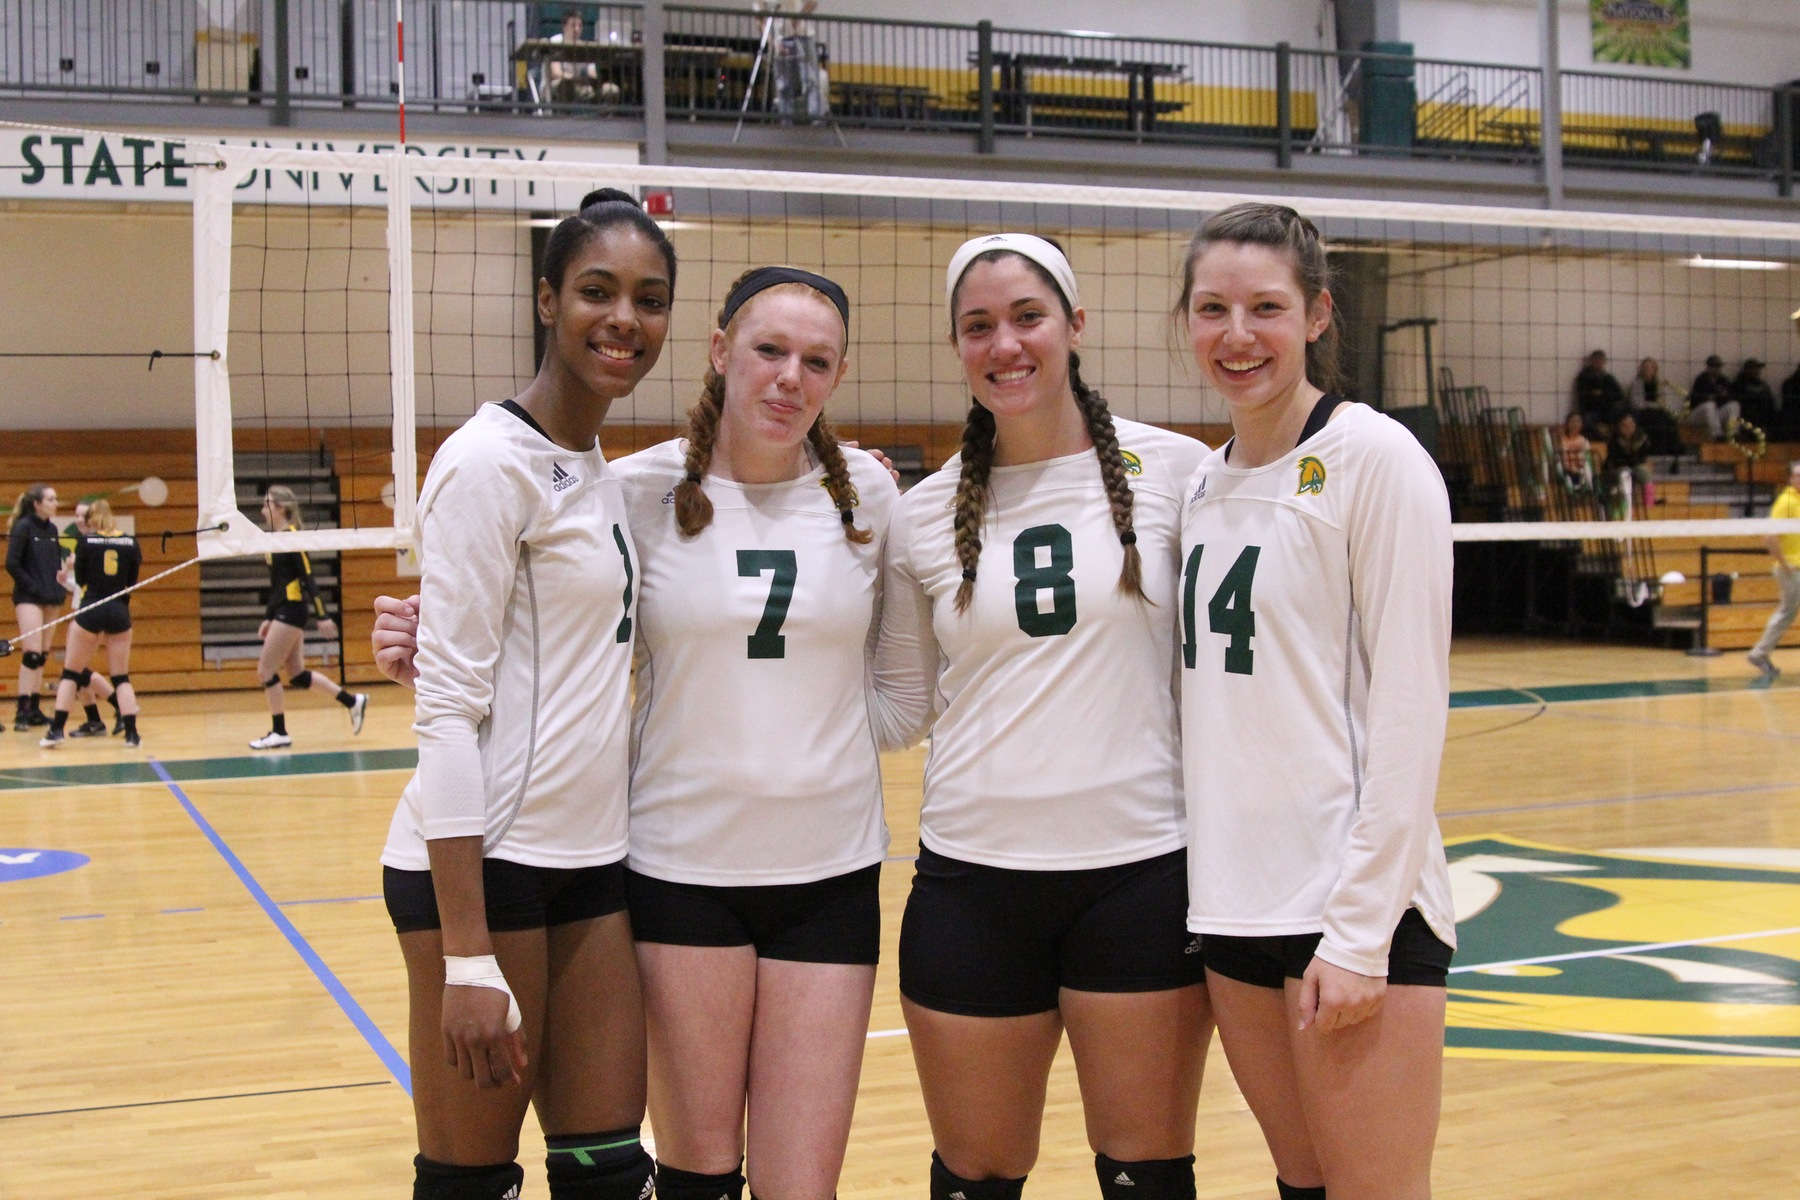 Falcons Host Tri-Match With Lancers & Leopards On Senior Day